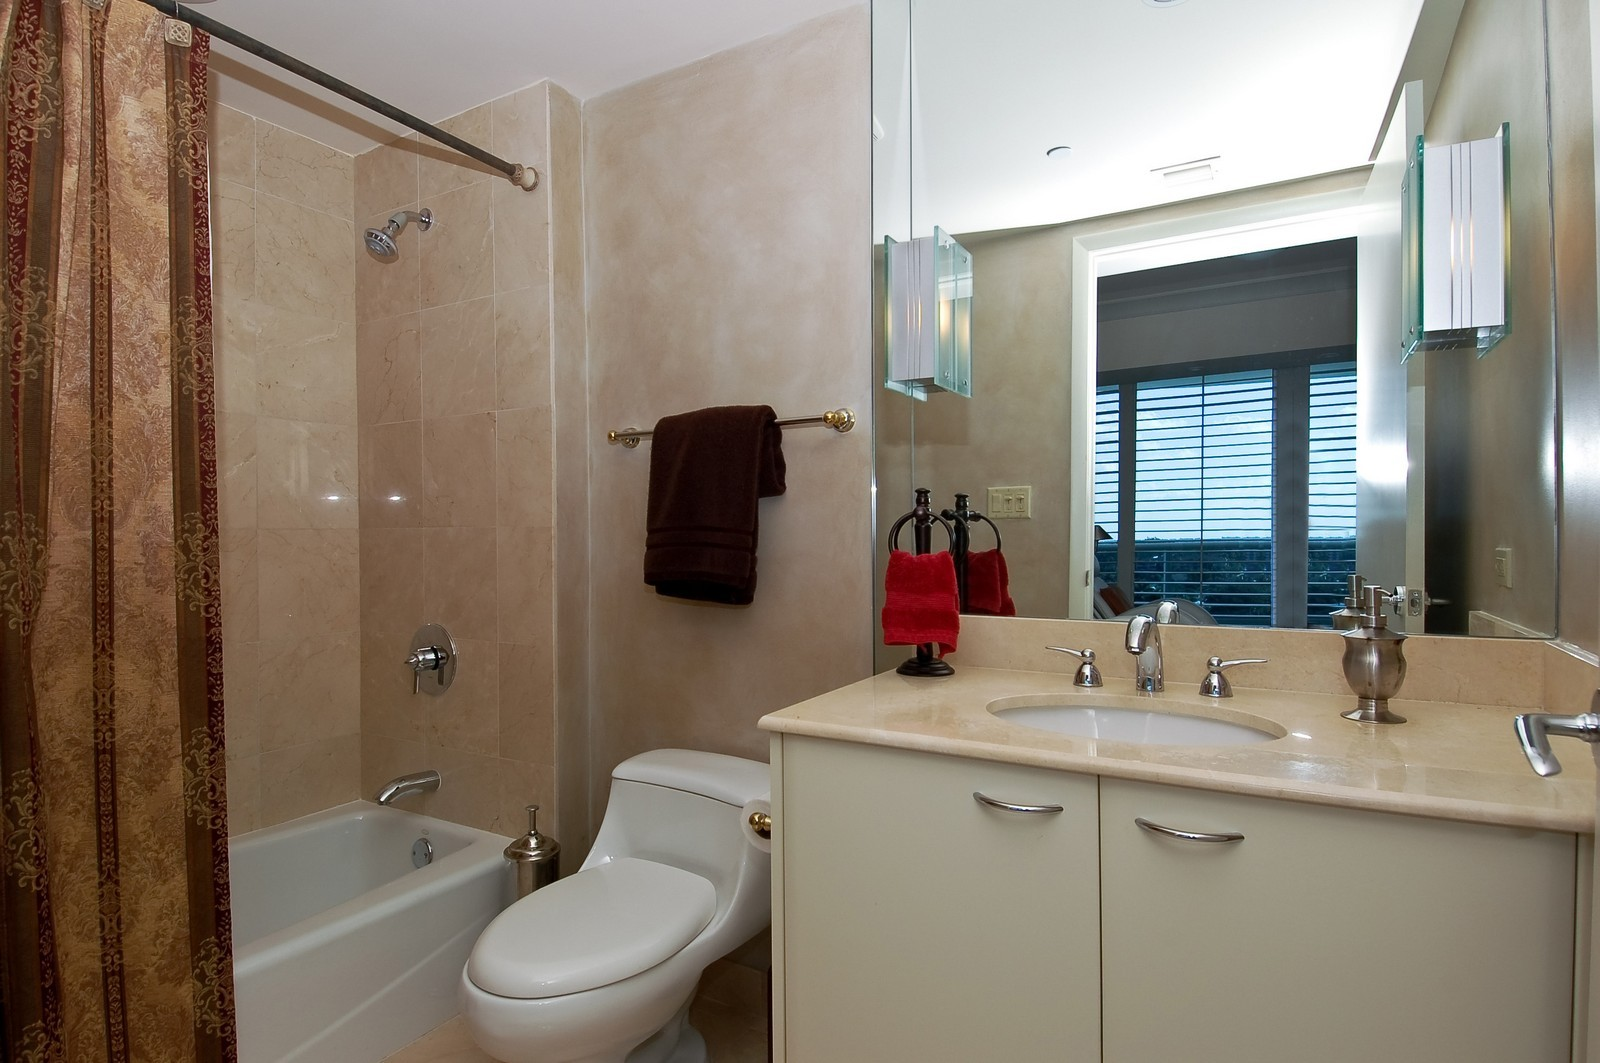 Real Estate Photography - 1600 S Ocean Blvd, Apt 802, Pompano Beach, FL, 33062 - 3rd Bathroom